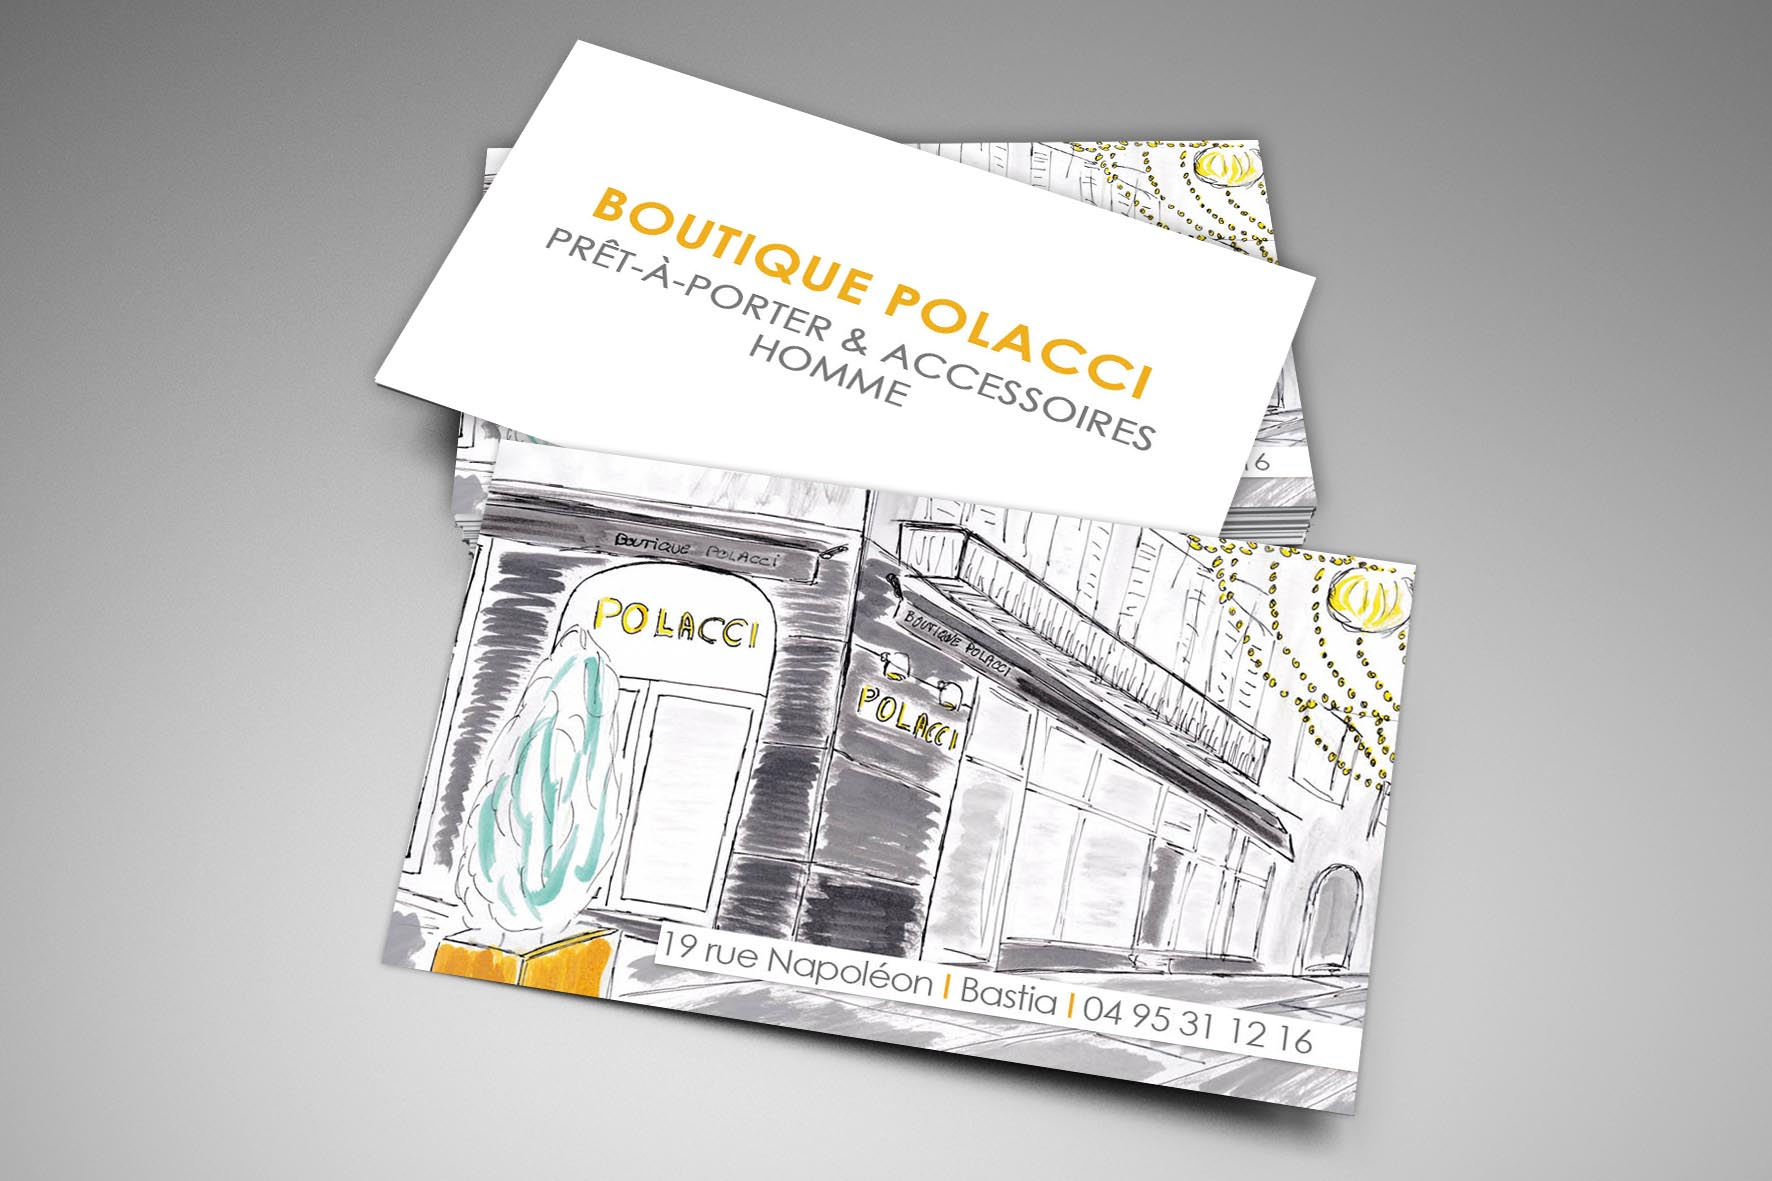 Boutique Polacci